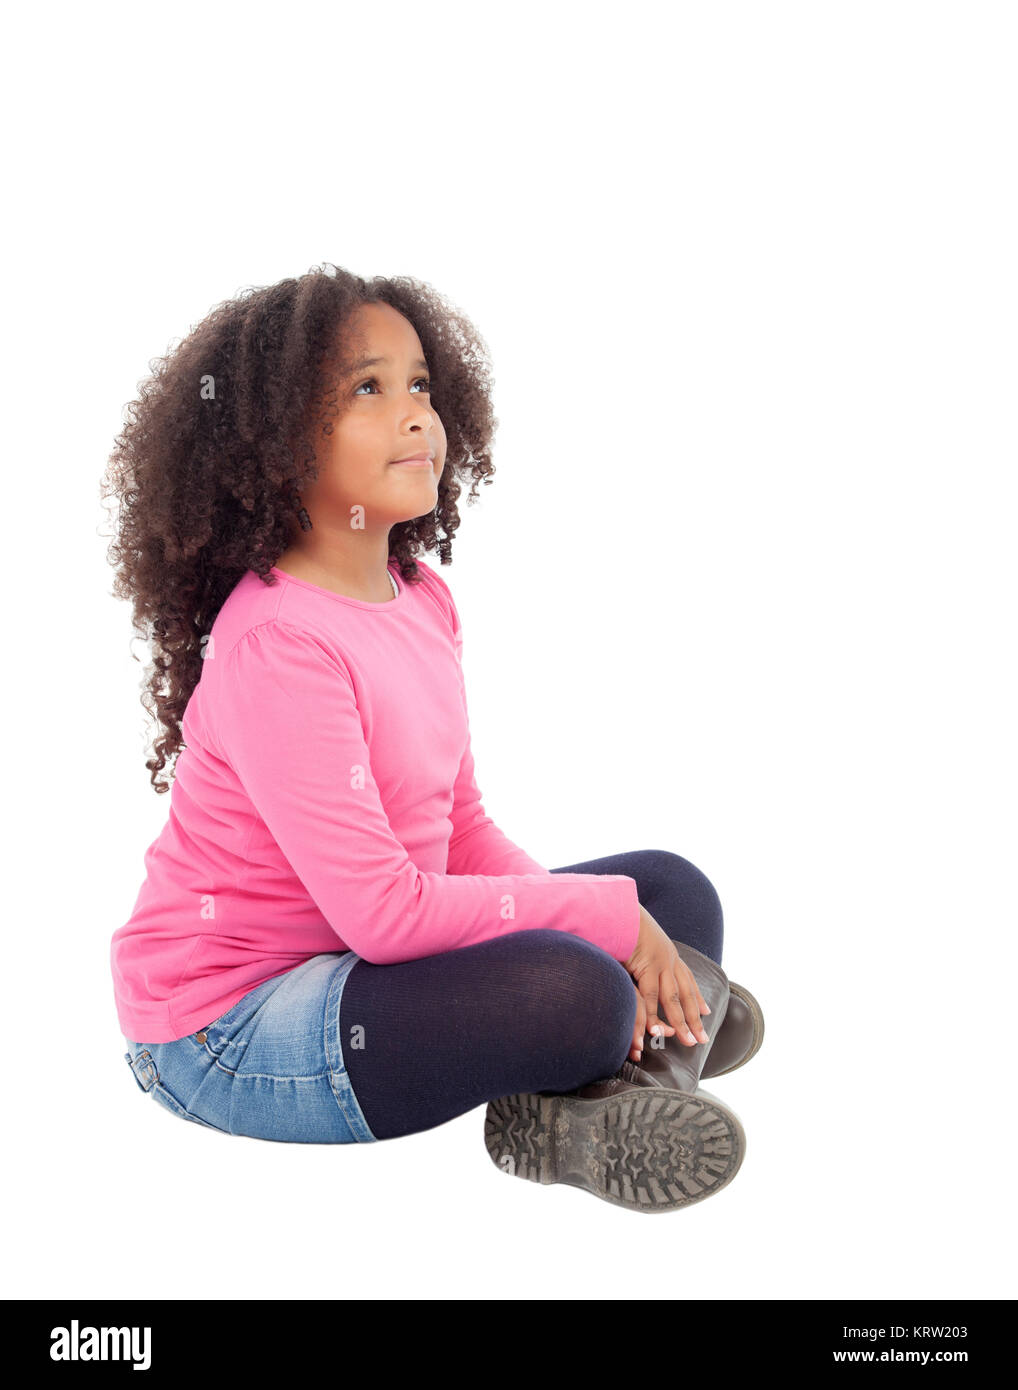 Adorable african little girl sitting on the floor - Stock Image